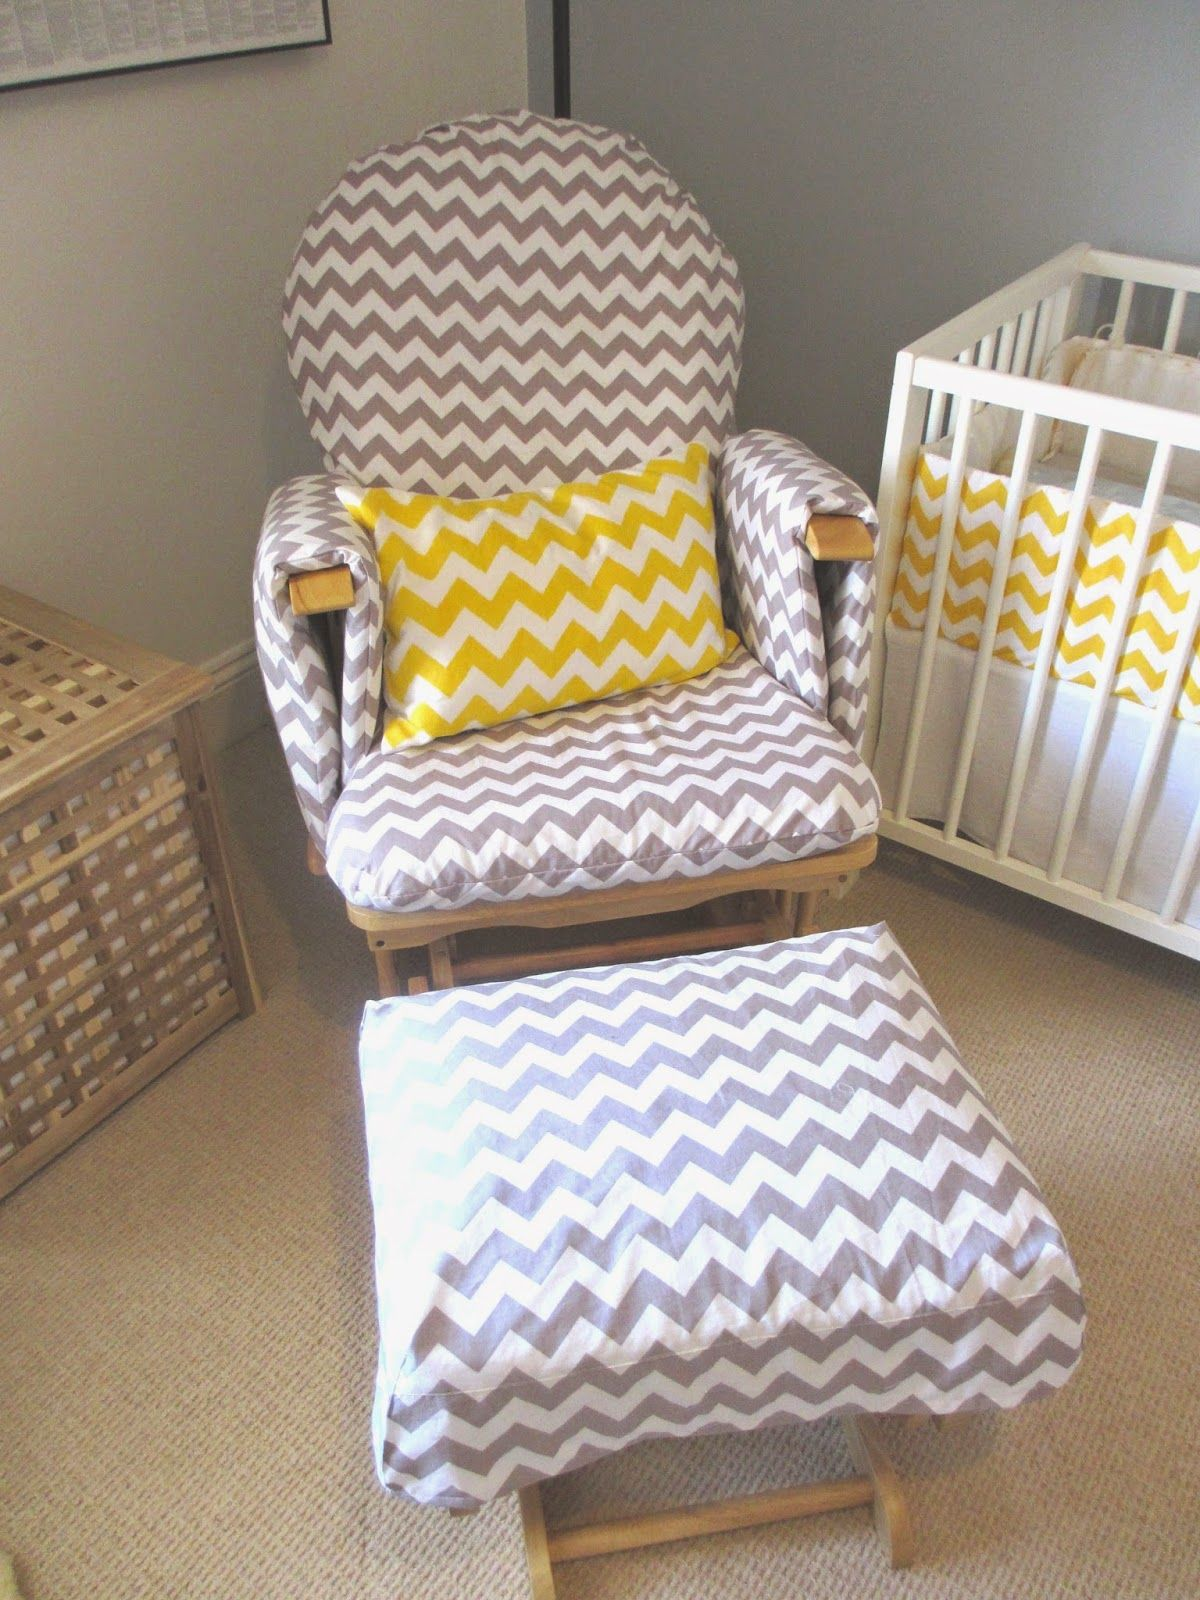 Bedroom Glider Chair Covers For Sale In Ghana Nursing Update Having A Baby